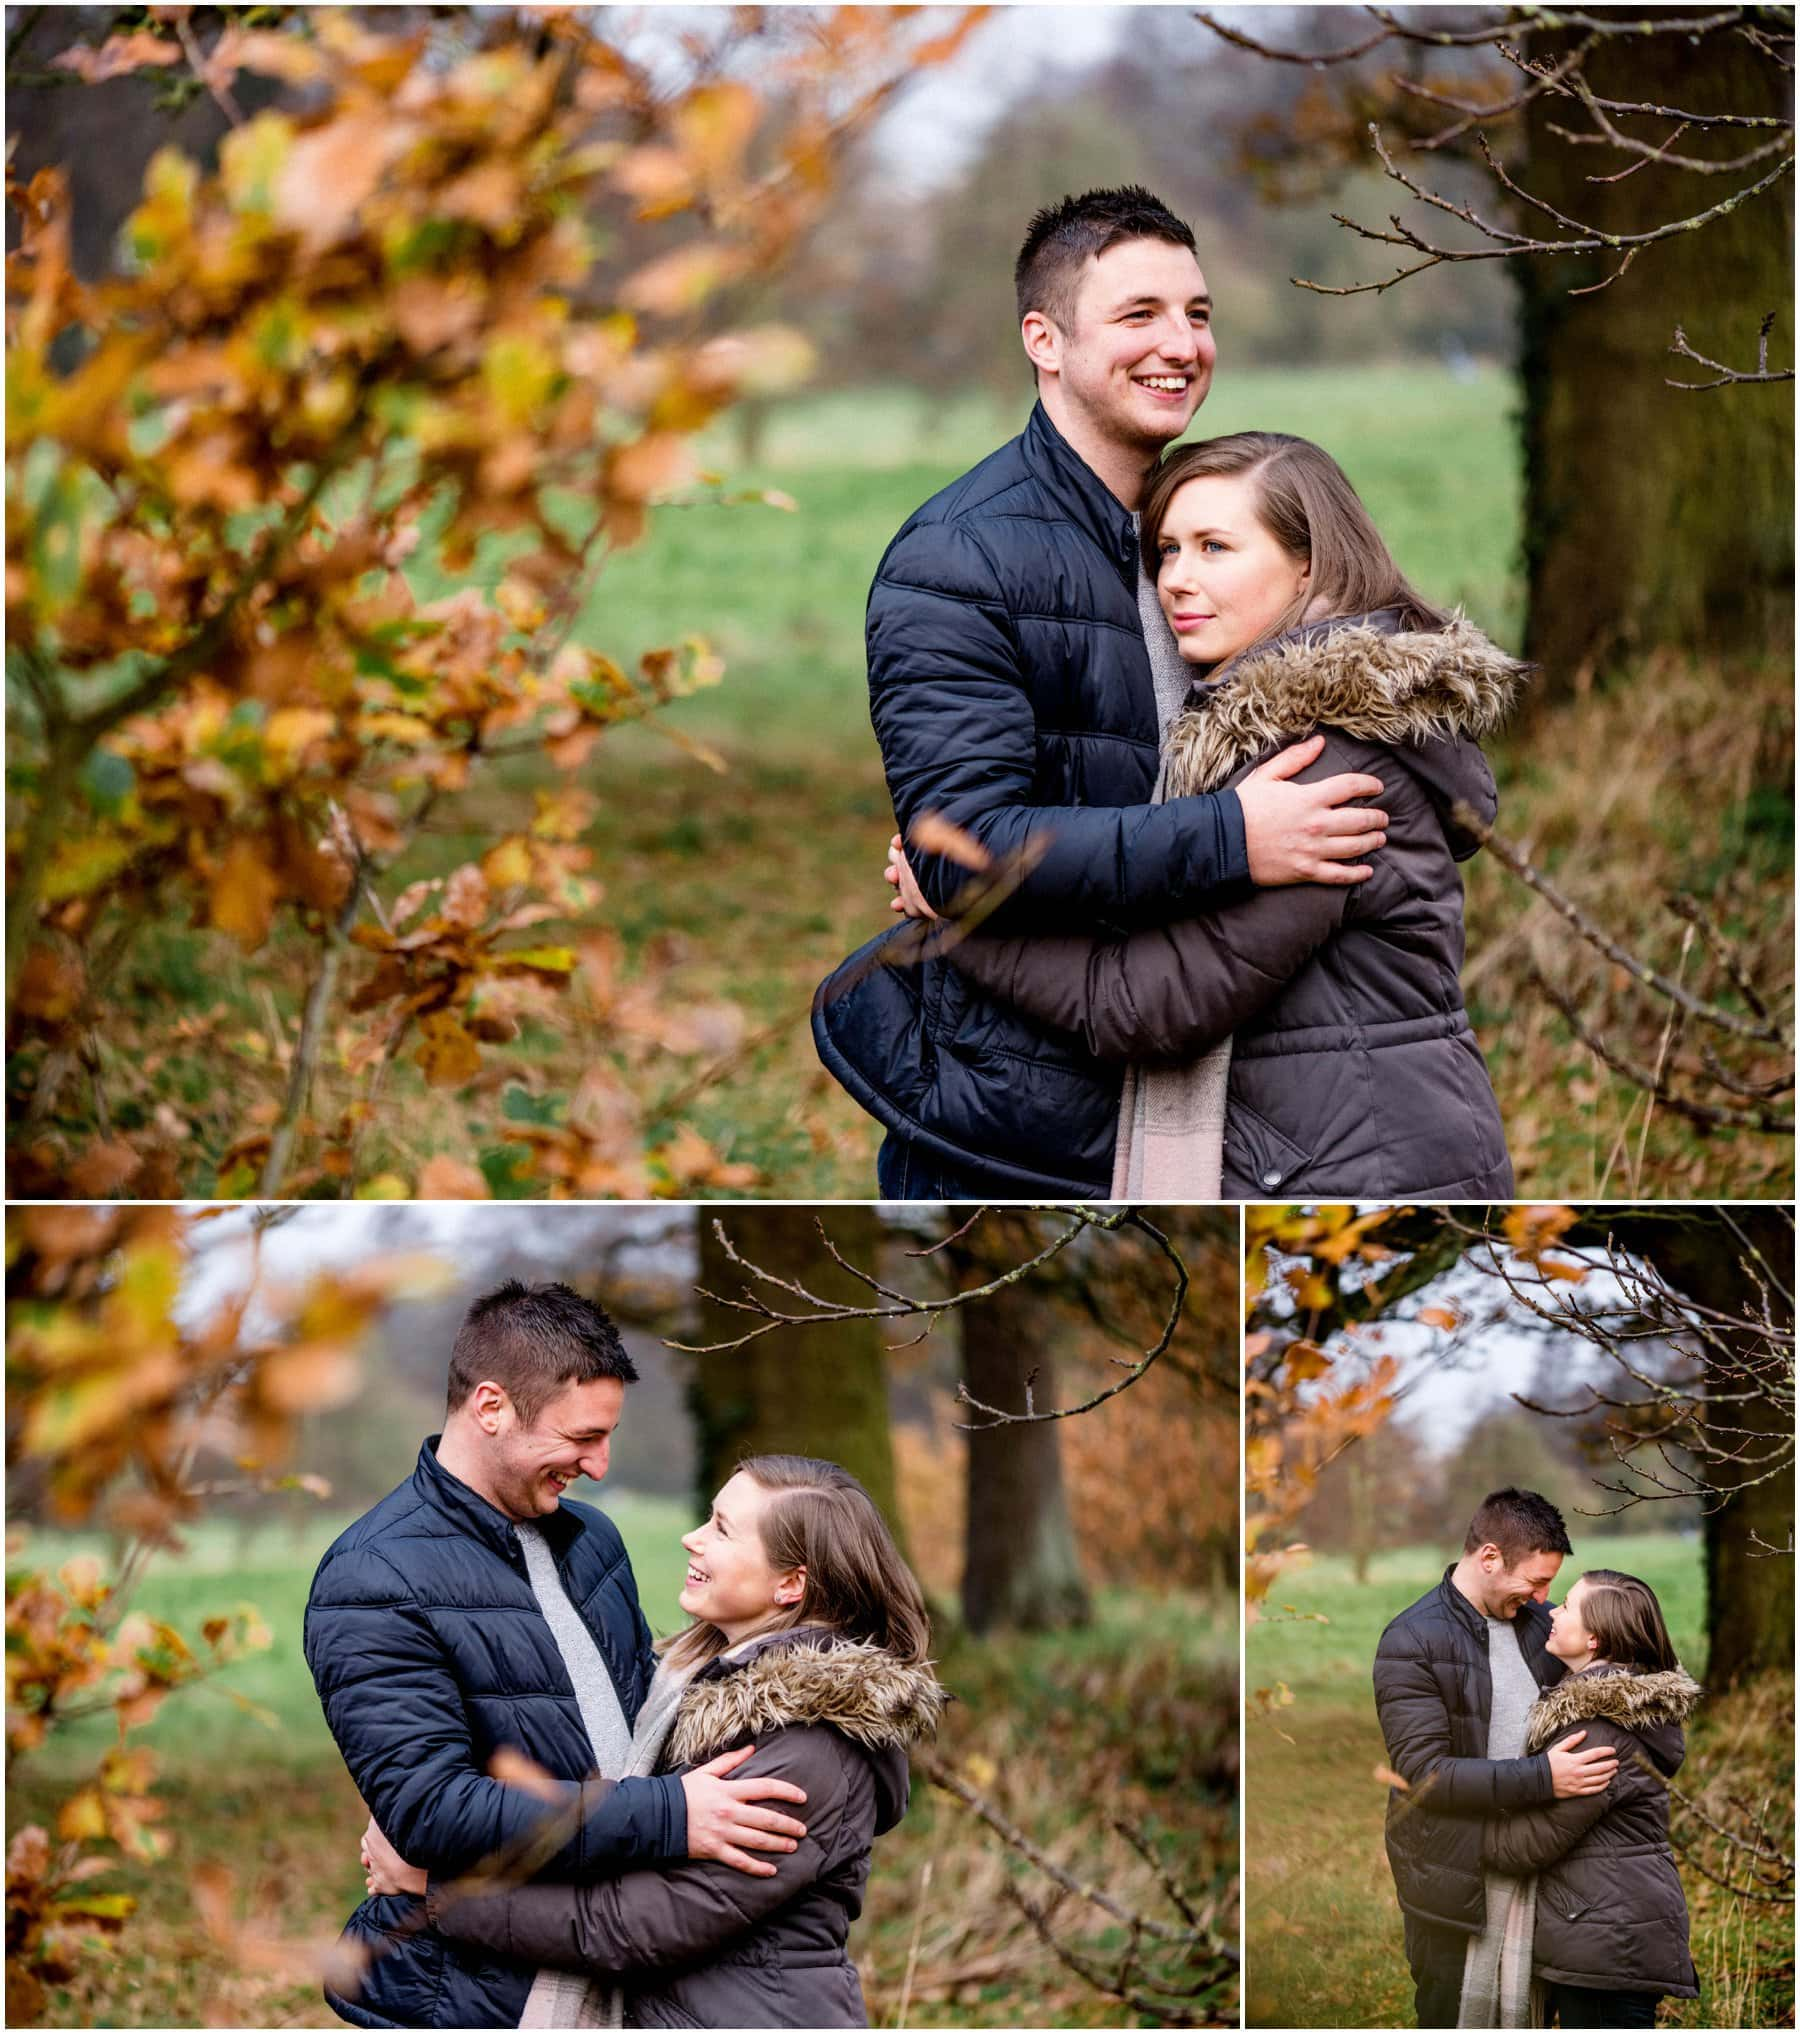 Pre-wedding Engagement Shoot by West Midlands Photographer Lisa Carpenter Photography